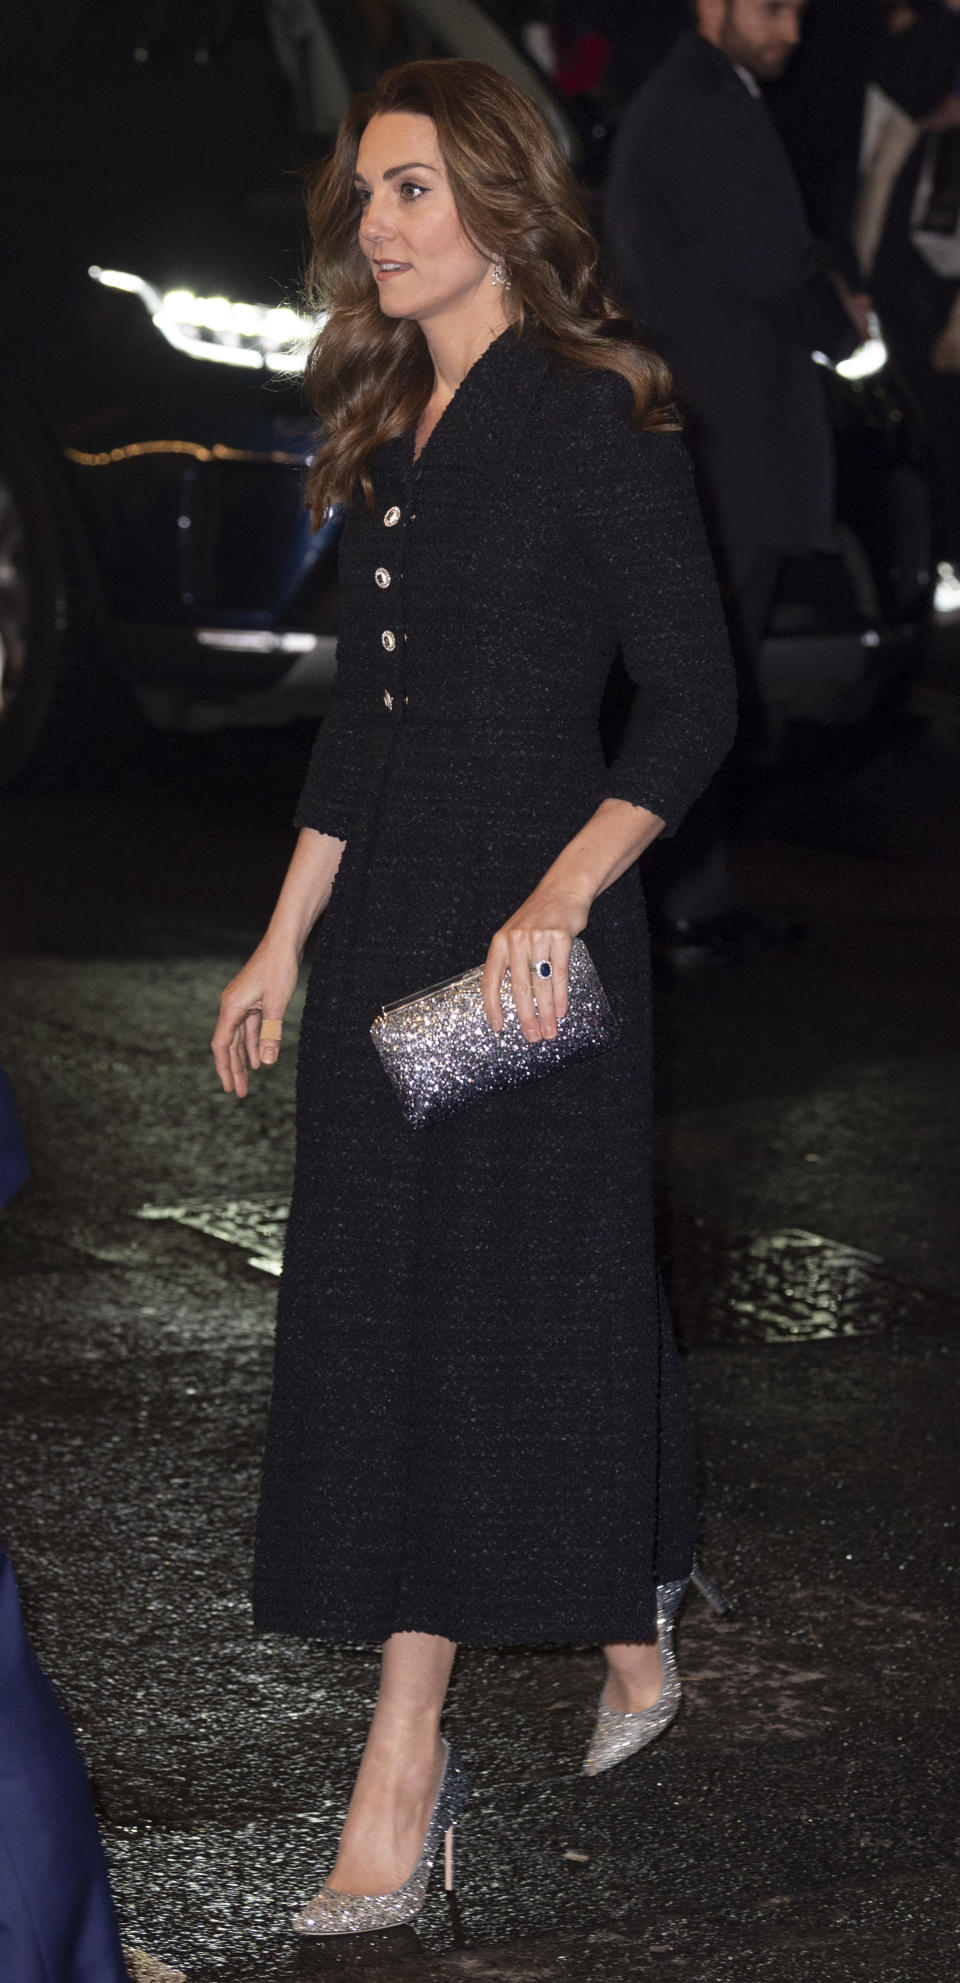 Duchess Catherine wore an Eponine dress, which she accessorised with Jimmy Choo heels and clutch bag for her outing on Tuesday night. (Getty)